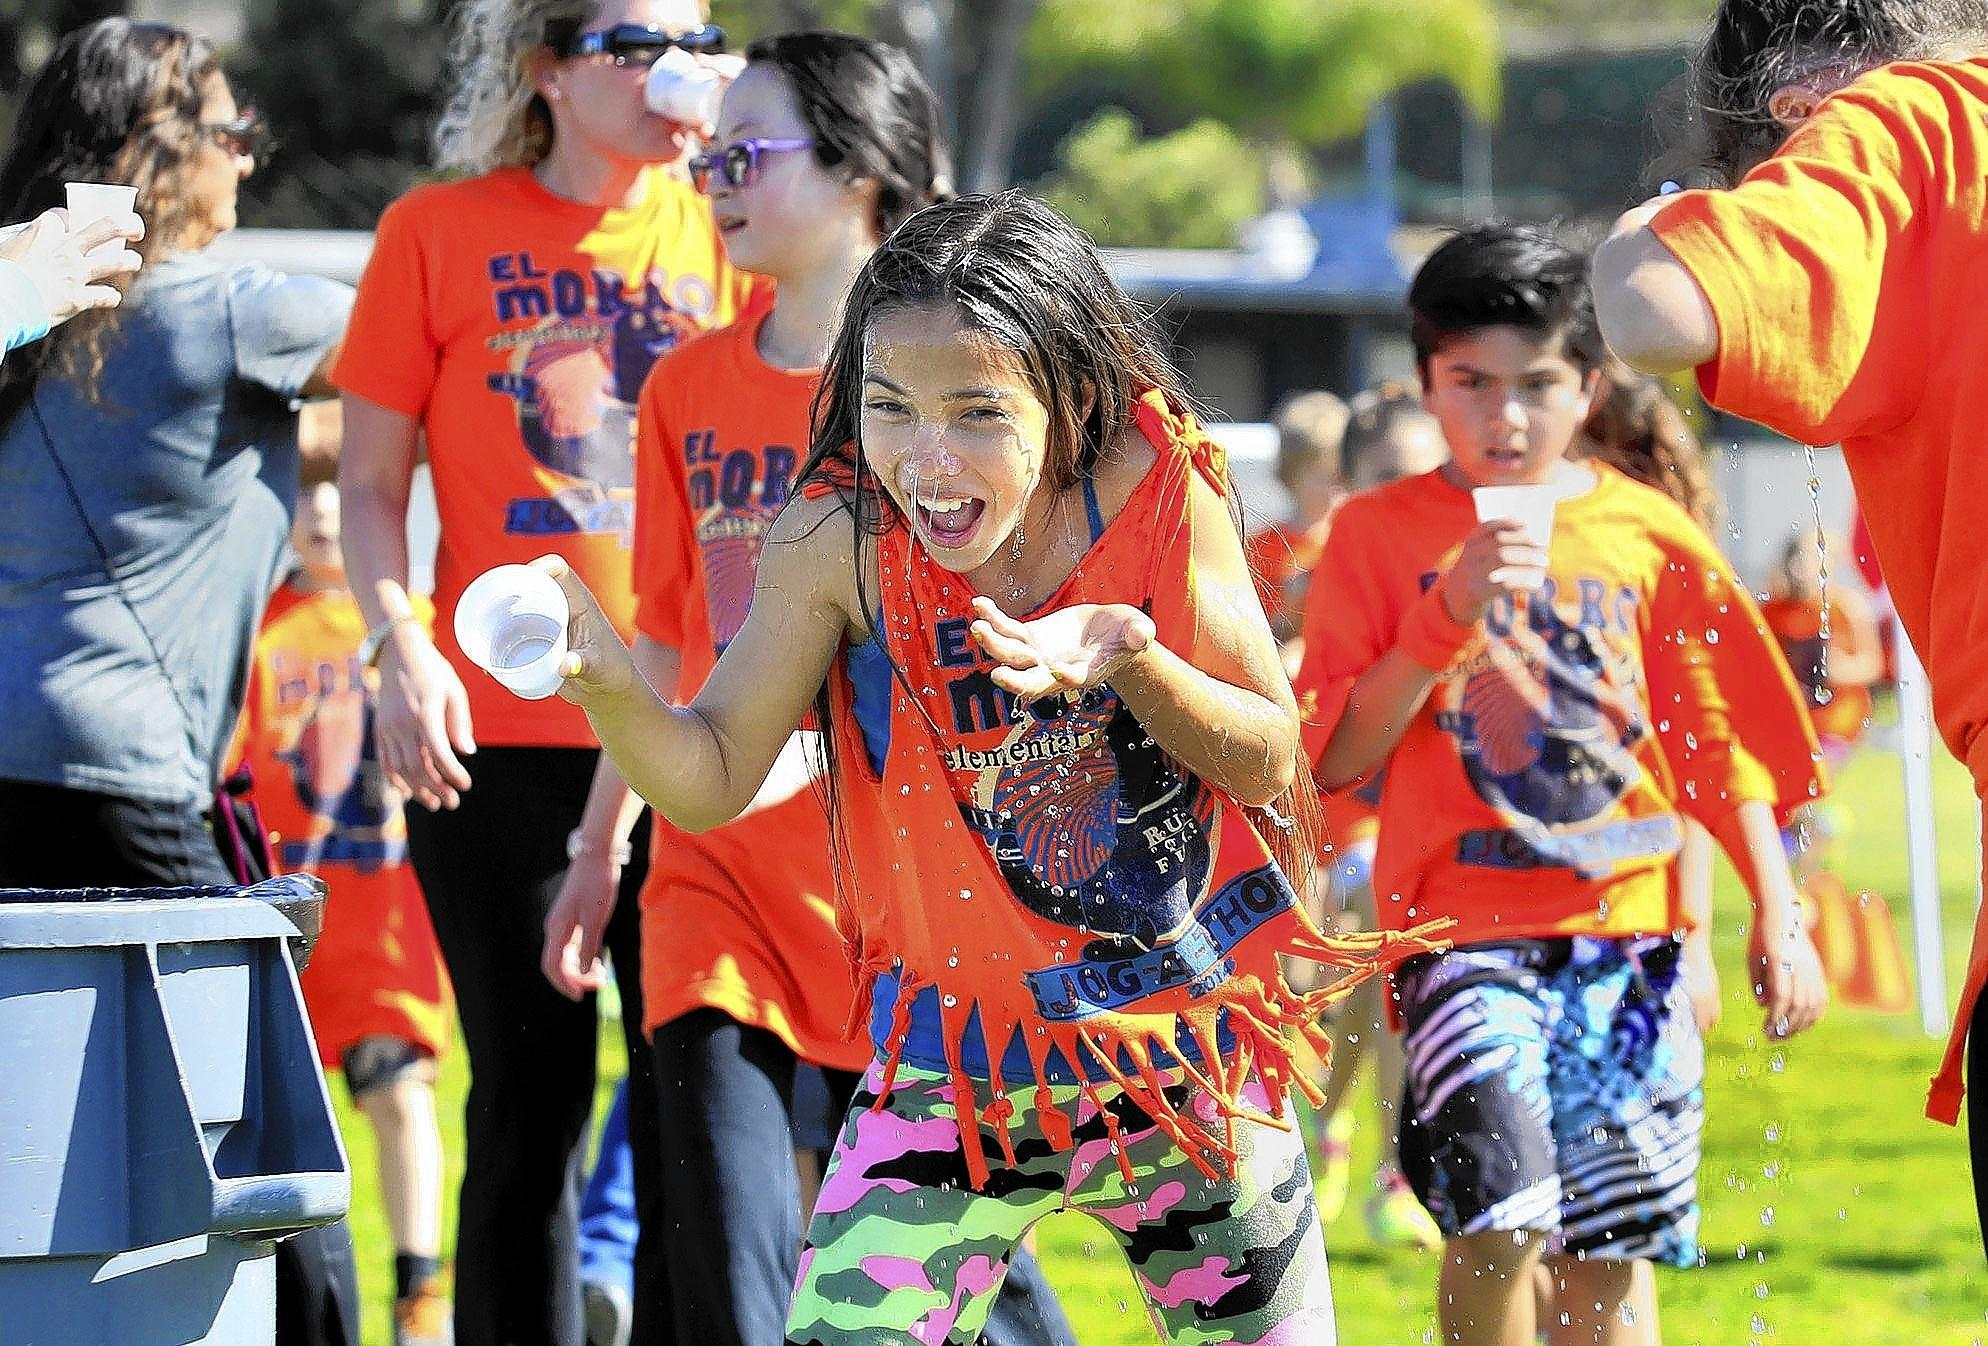 Fourth-grader Makena Angus, 10, dumps a cup of water on her face as she participates in the annual Jog-A-Thon fundraiser at El Morro Elementary on Friday.